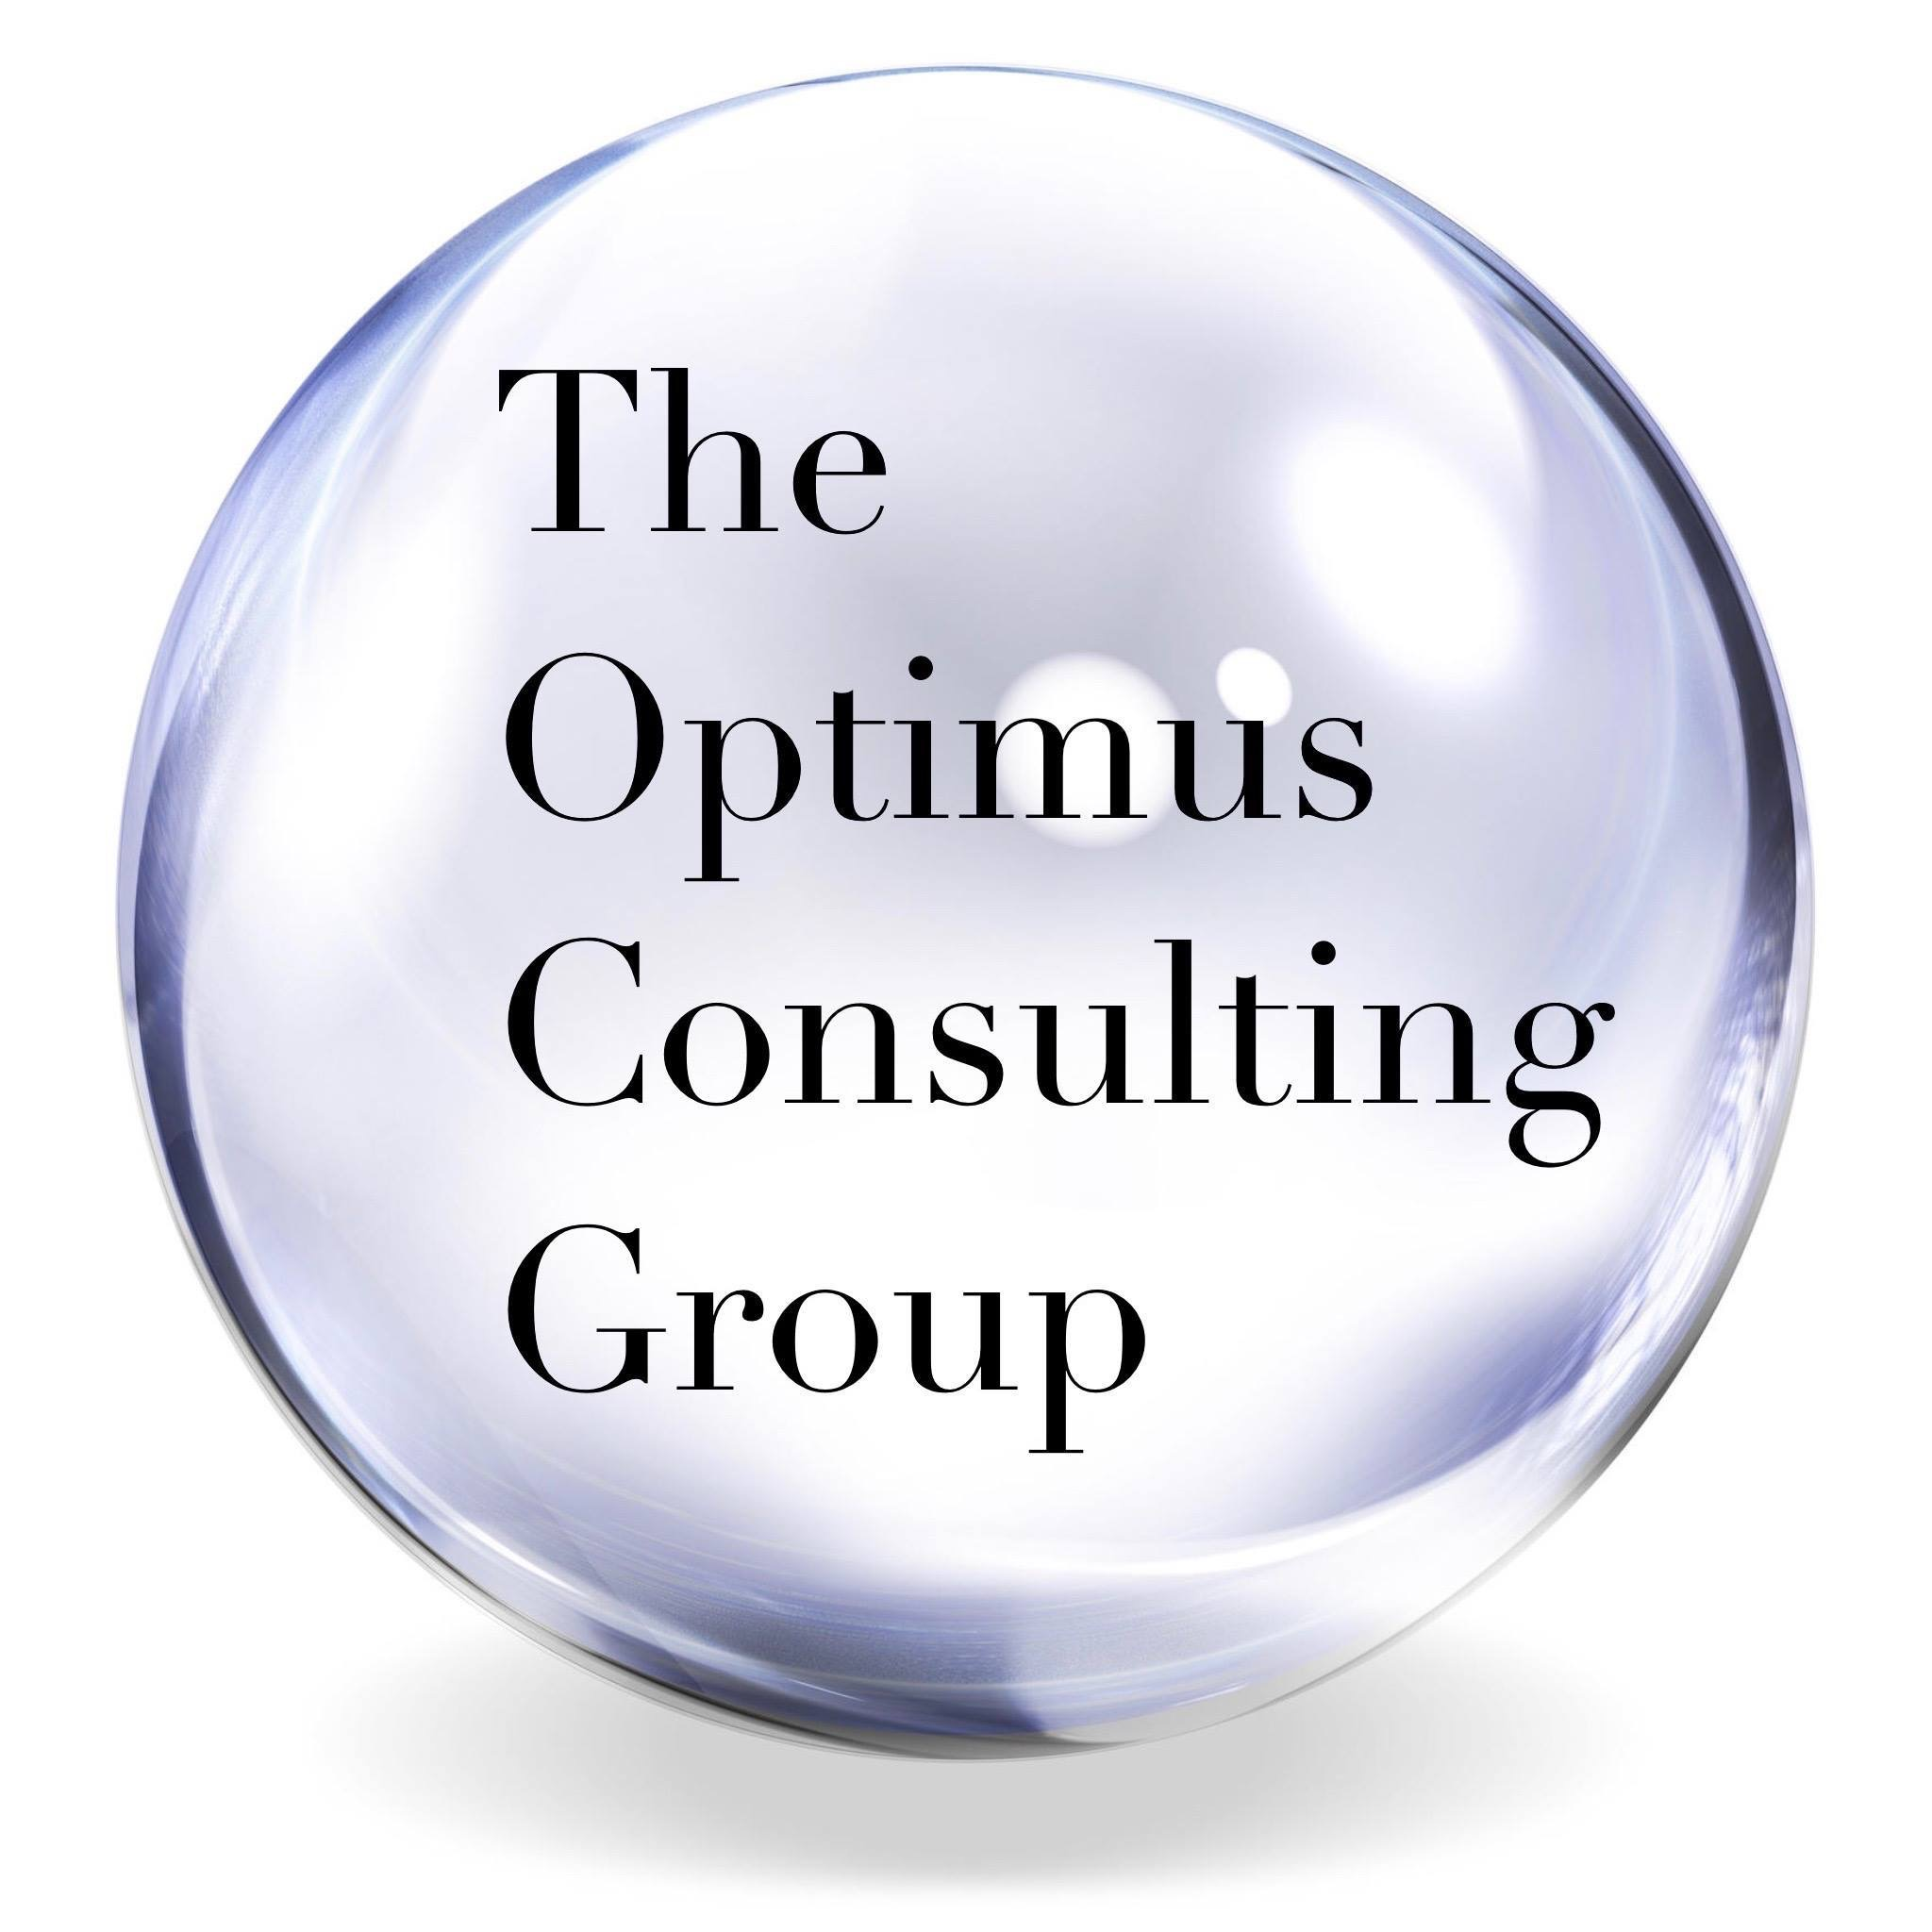 The Optimus Consulting Group logo